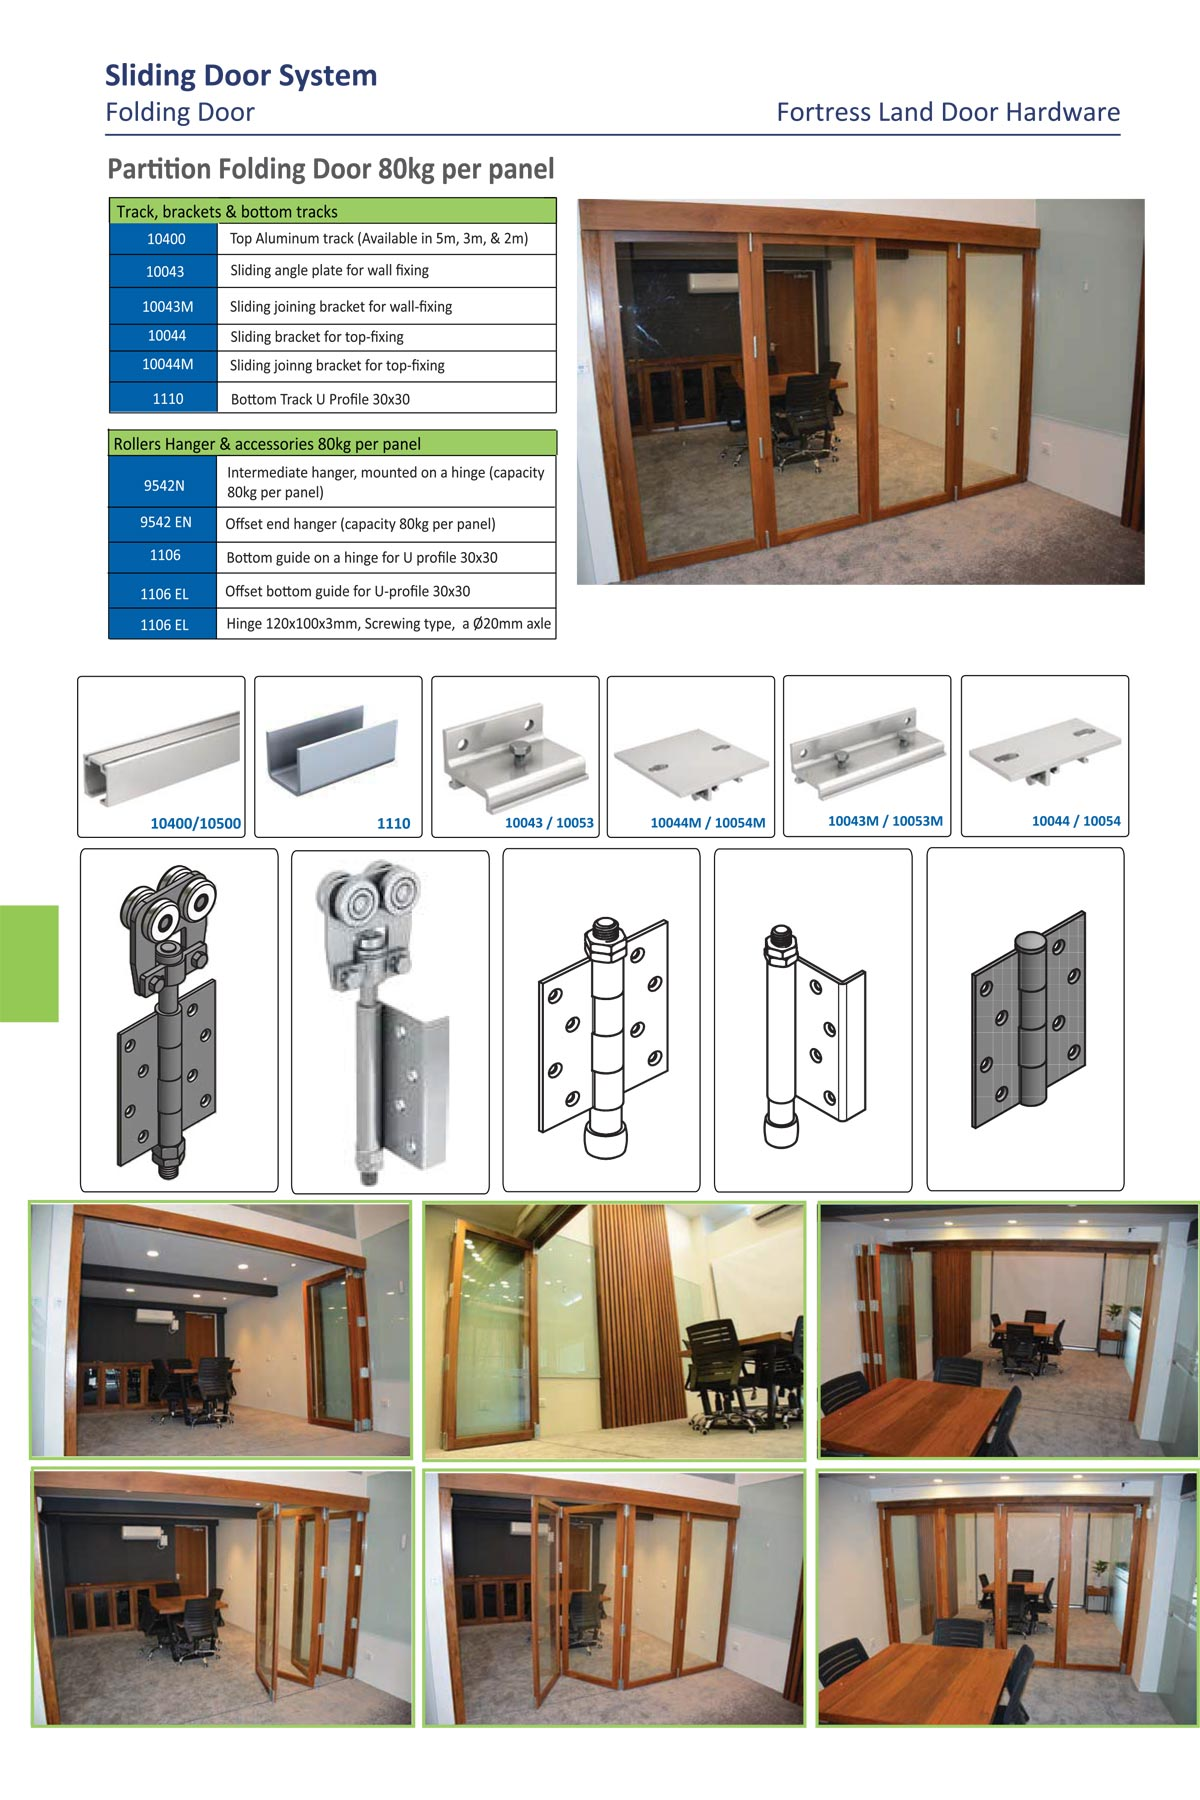 folding door, removable partition door, wardrobe folding door, sliding folding door, bottomless sliding folding door, bottomless floding door, wooden folding door, solid sliding door, Fortress Land Security Company Yangon, Myanmar